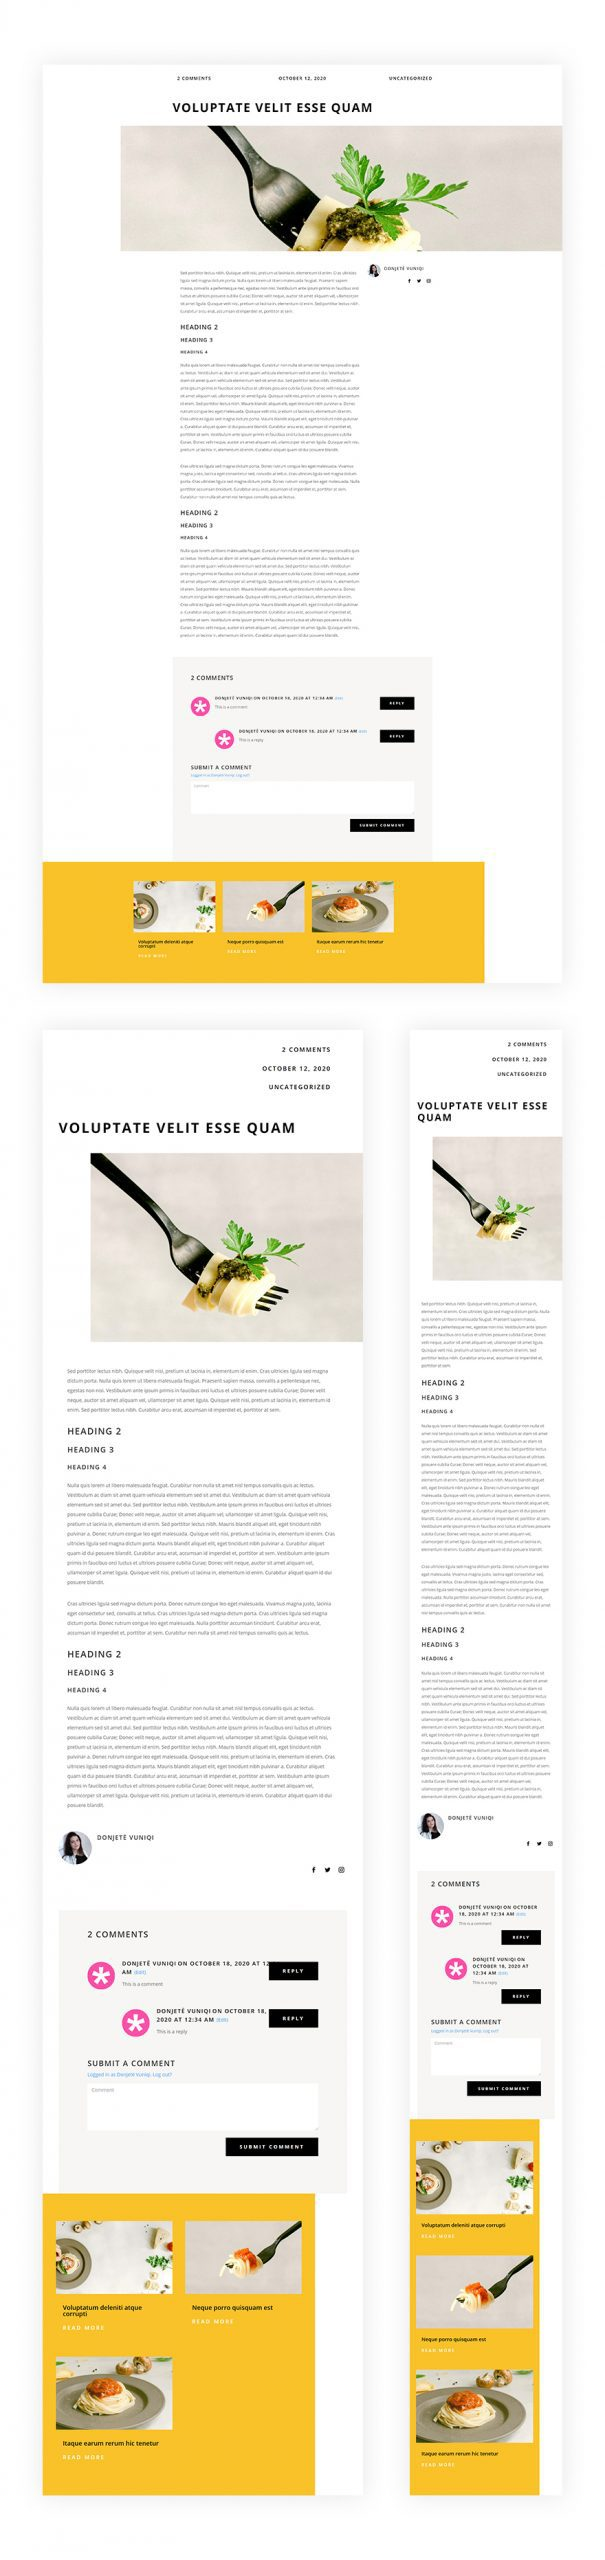 Blog Post Template for Italian Restaurant Layout Pack